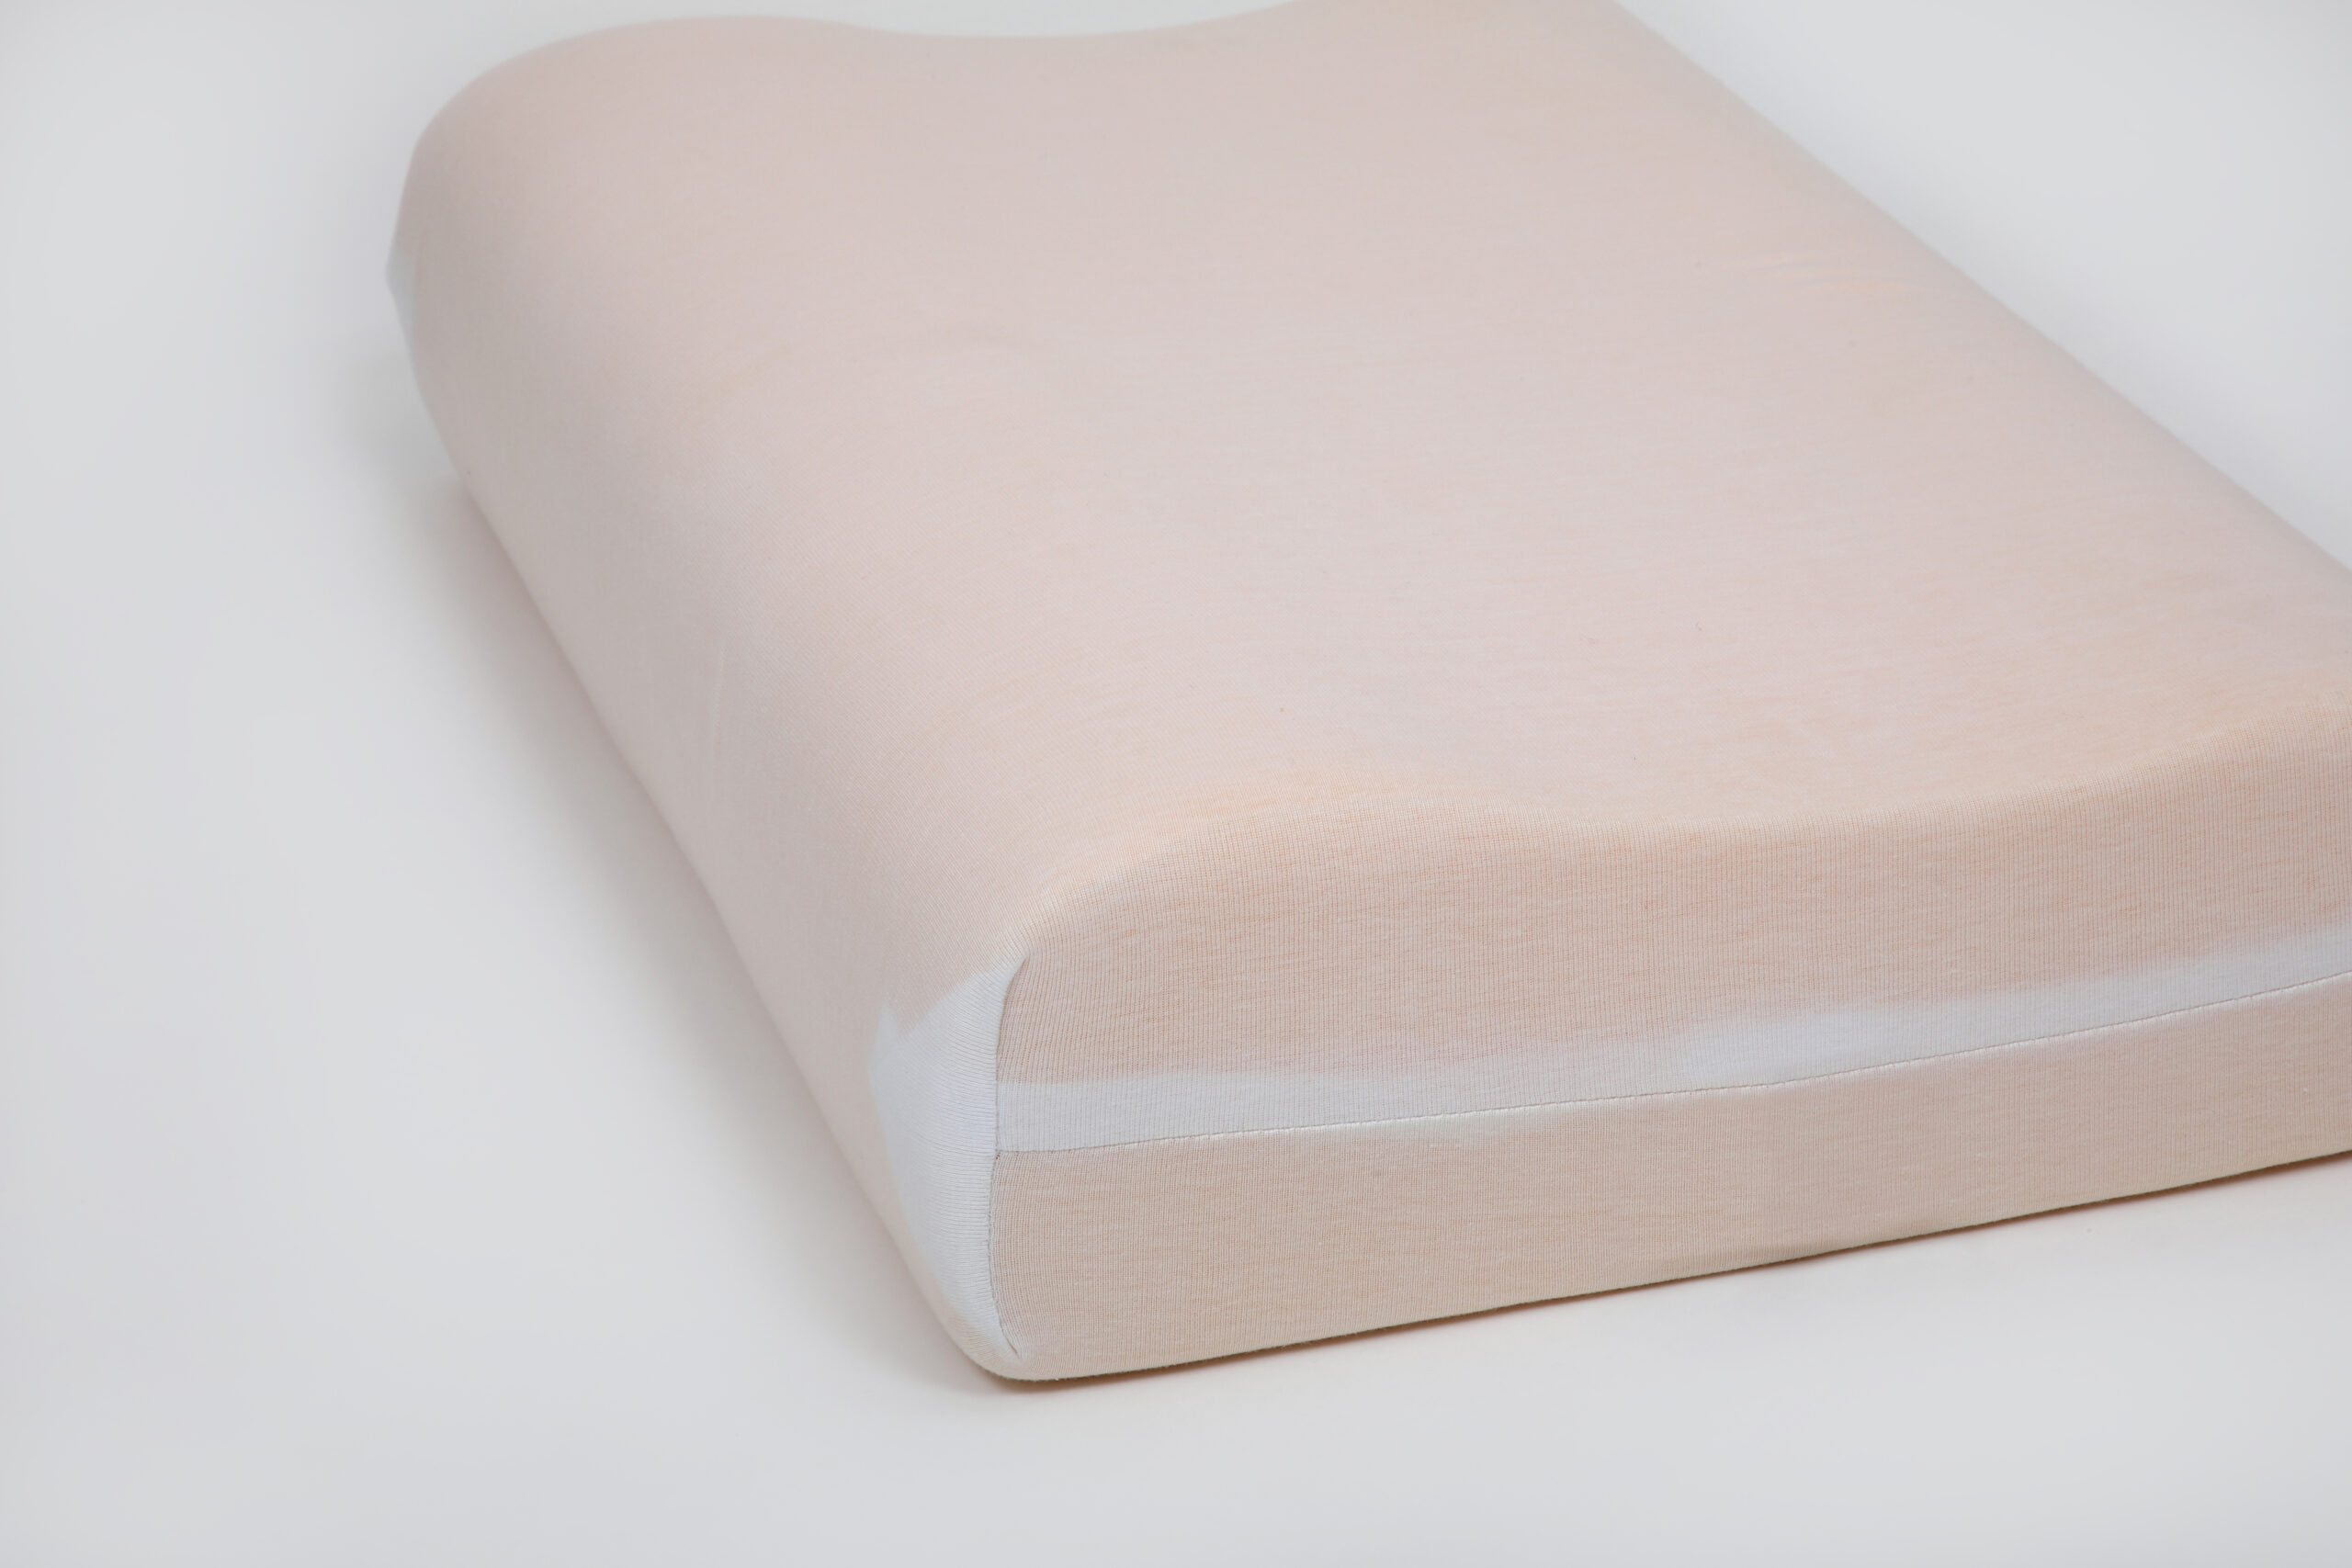 Ergonomic memory foam pillow by NAM House of sleep (picture 3)